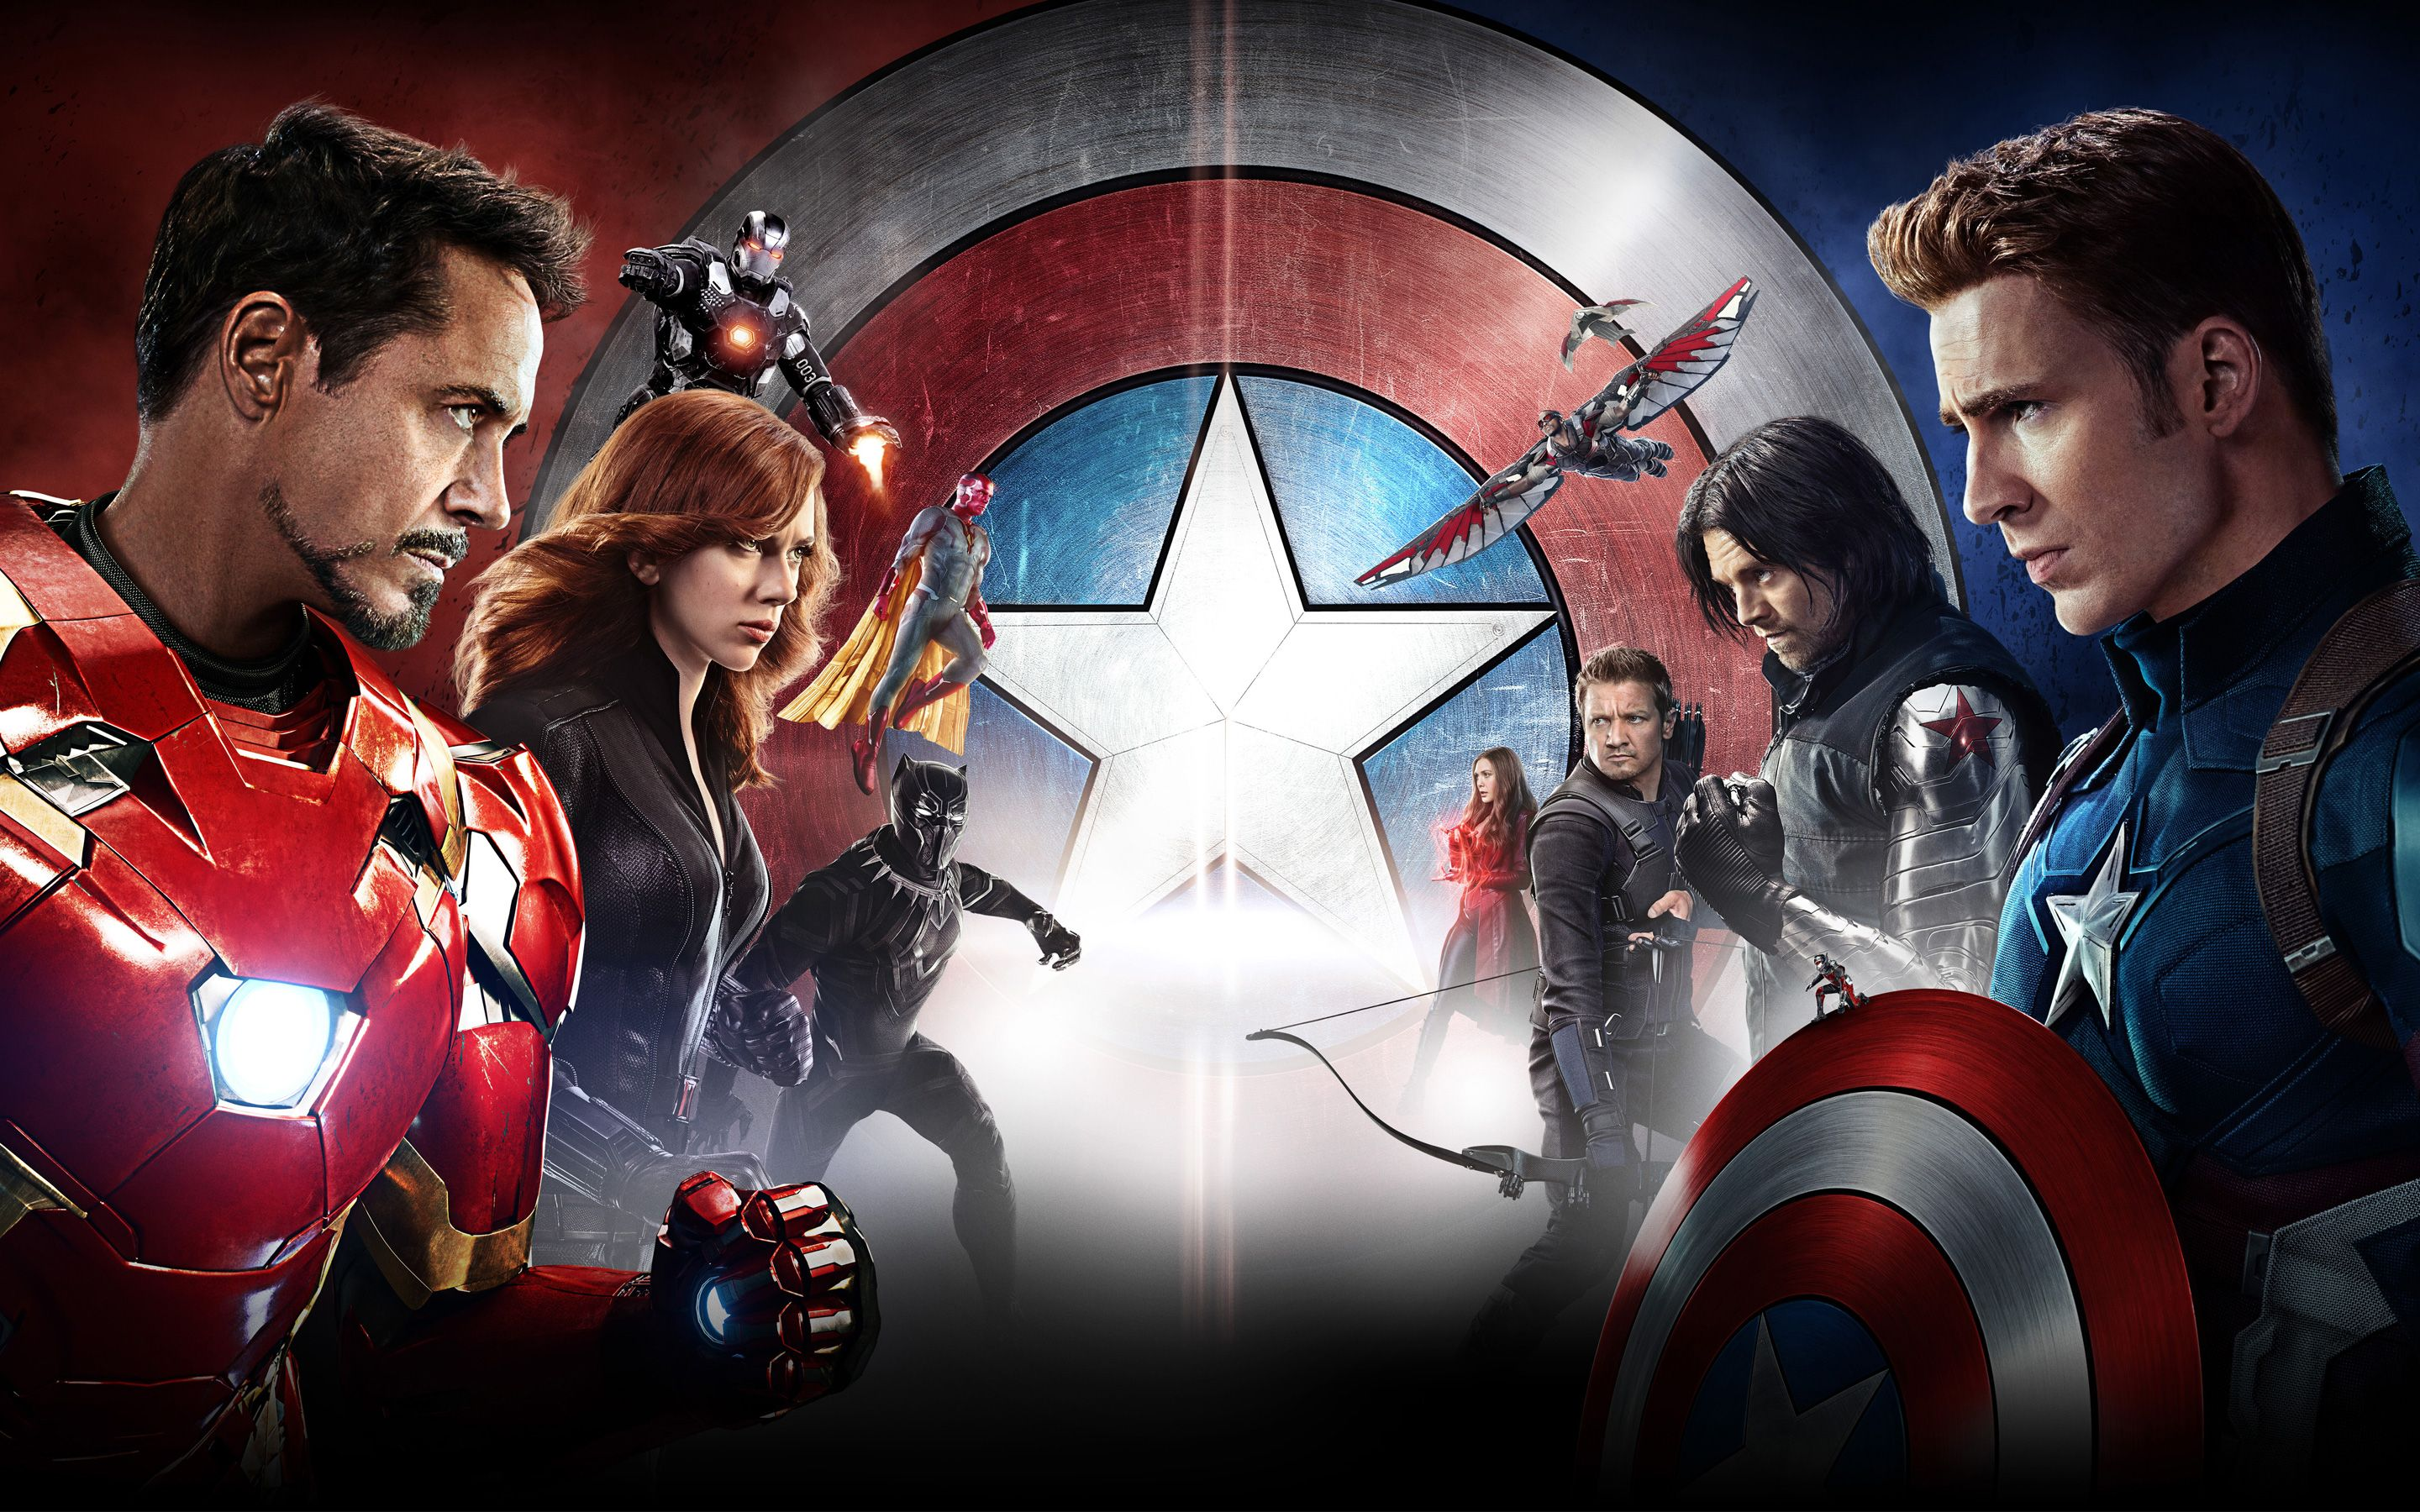 captain america hd images - free download latest captain america hd